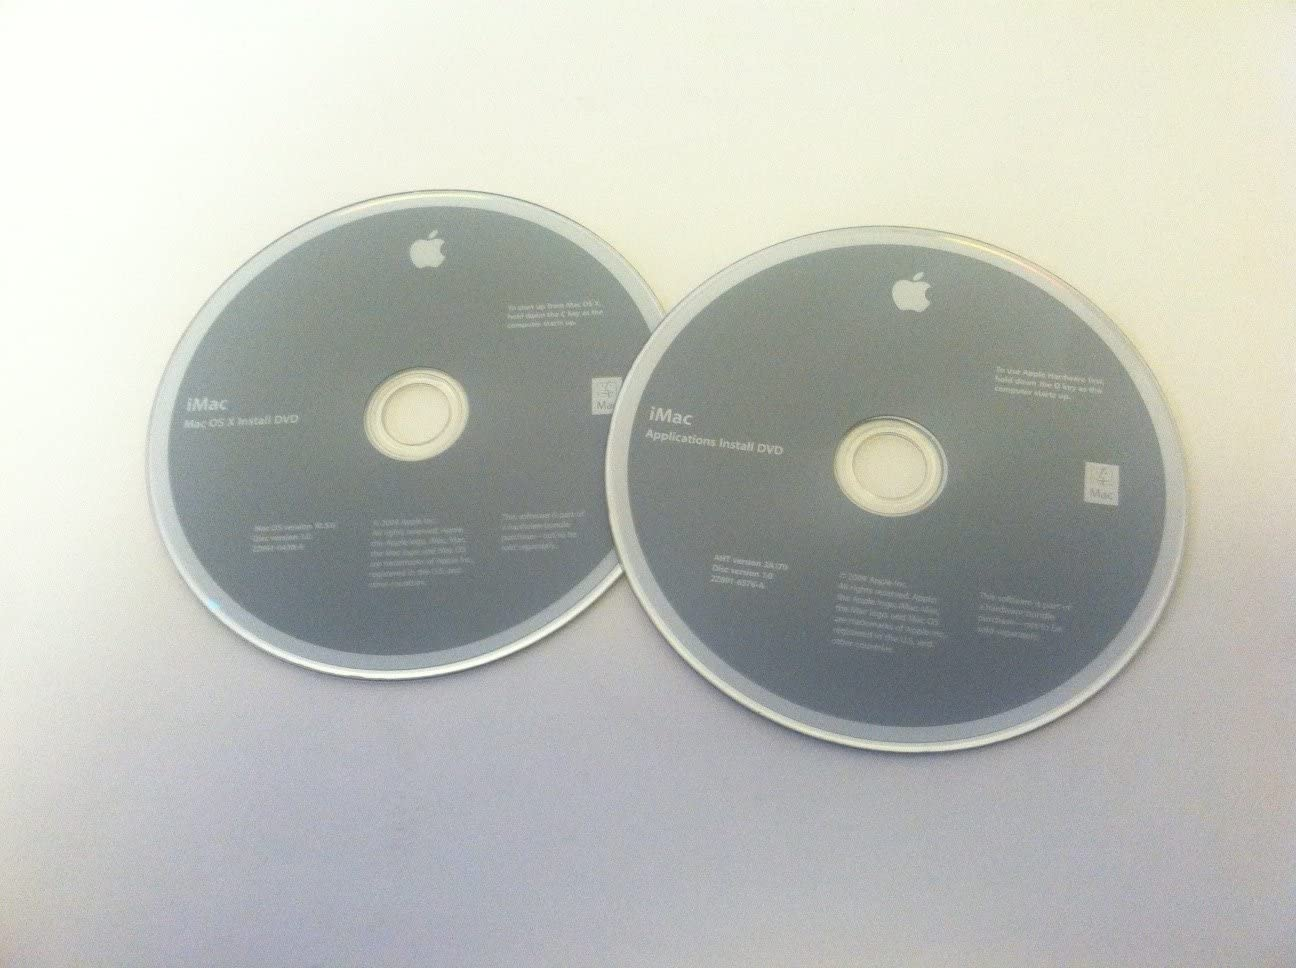 Apple iMac OS X Install DVDs 10.5.6 2009 Recovery Discs